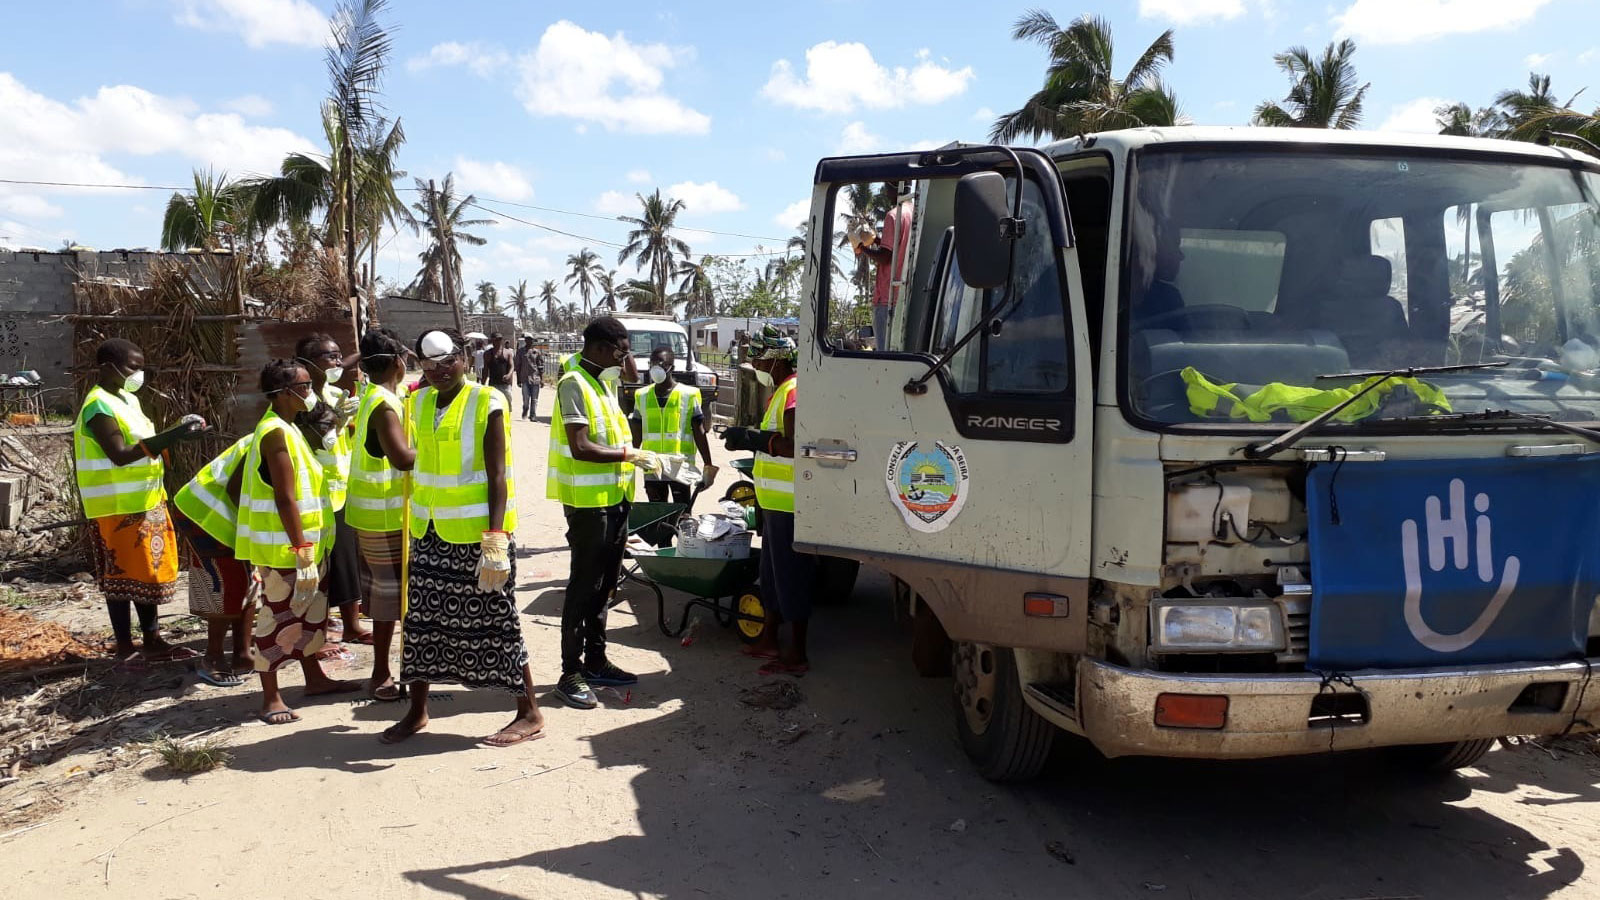 HI's-logistics-team-helps-to-clear-roads-from-debris-following-the-cyclone-in-Mozambique